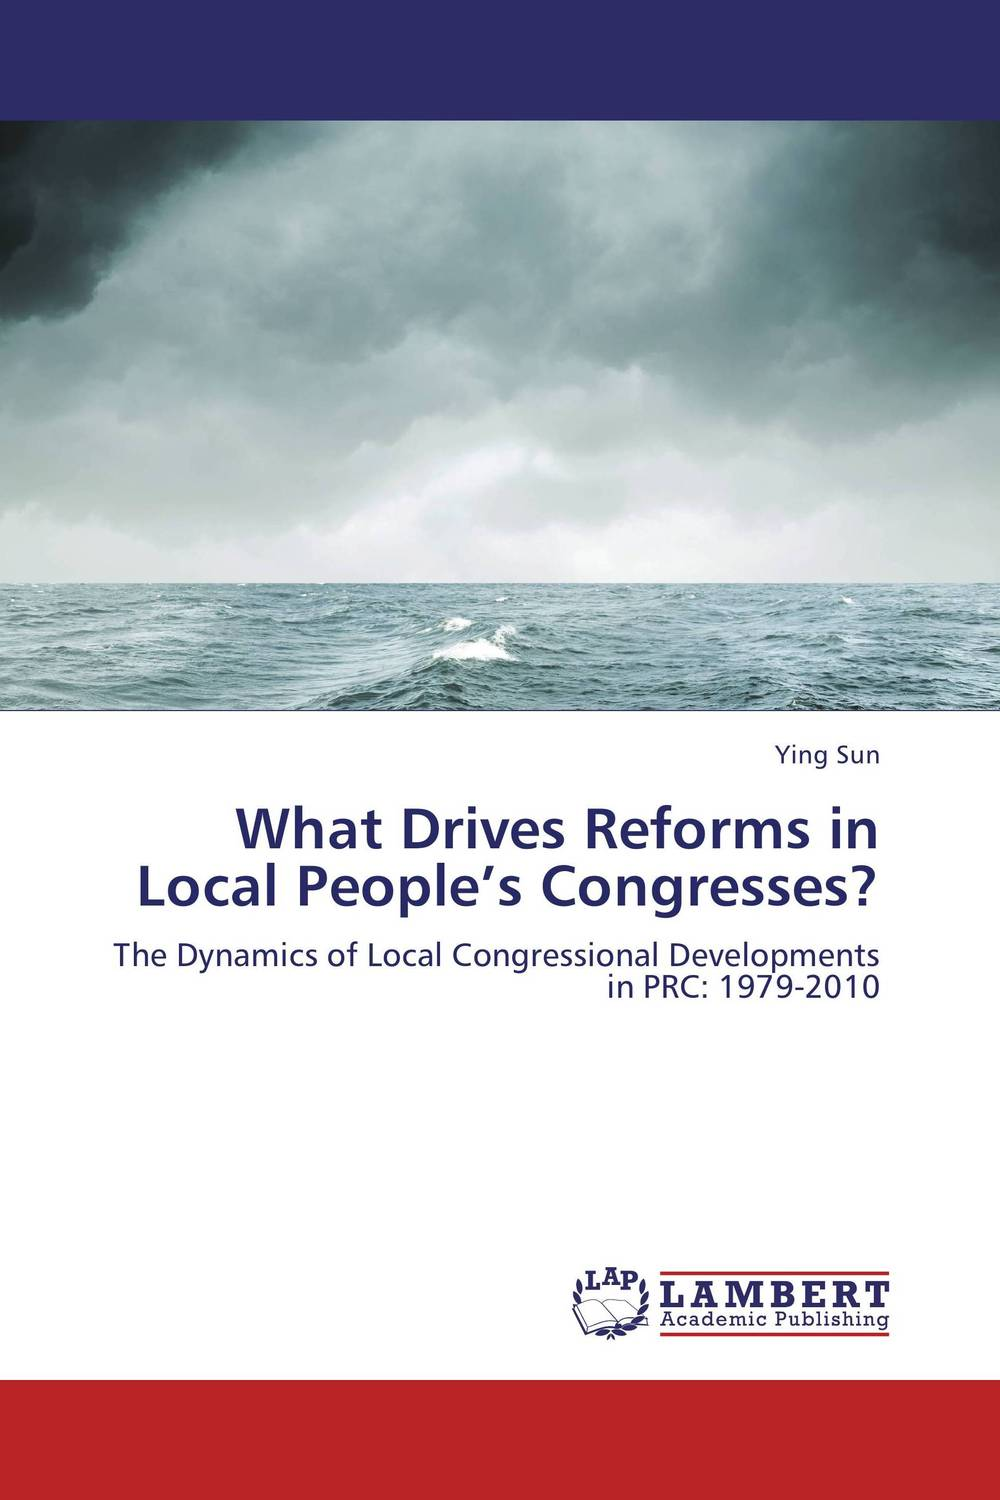 What Drives Reforms in Local People's Congresses? roger r thompson china s local councils in the age of constitutional reform 1898–1911